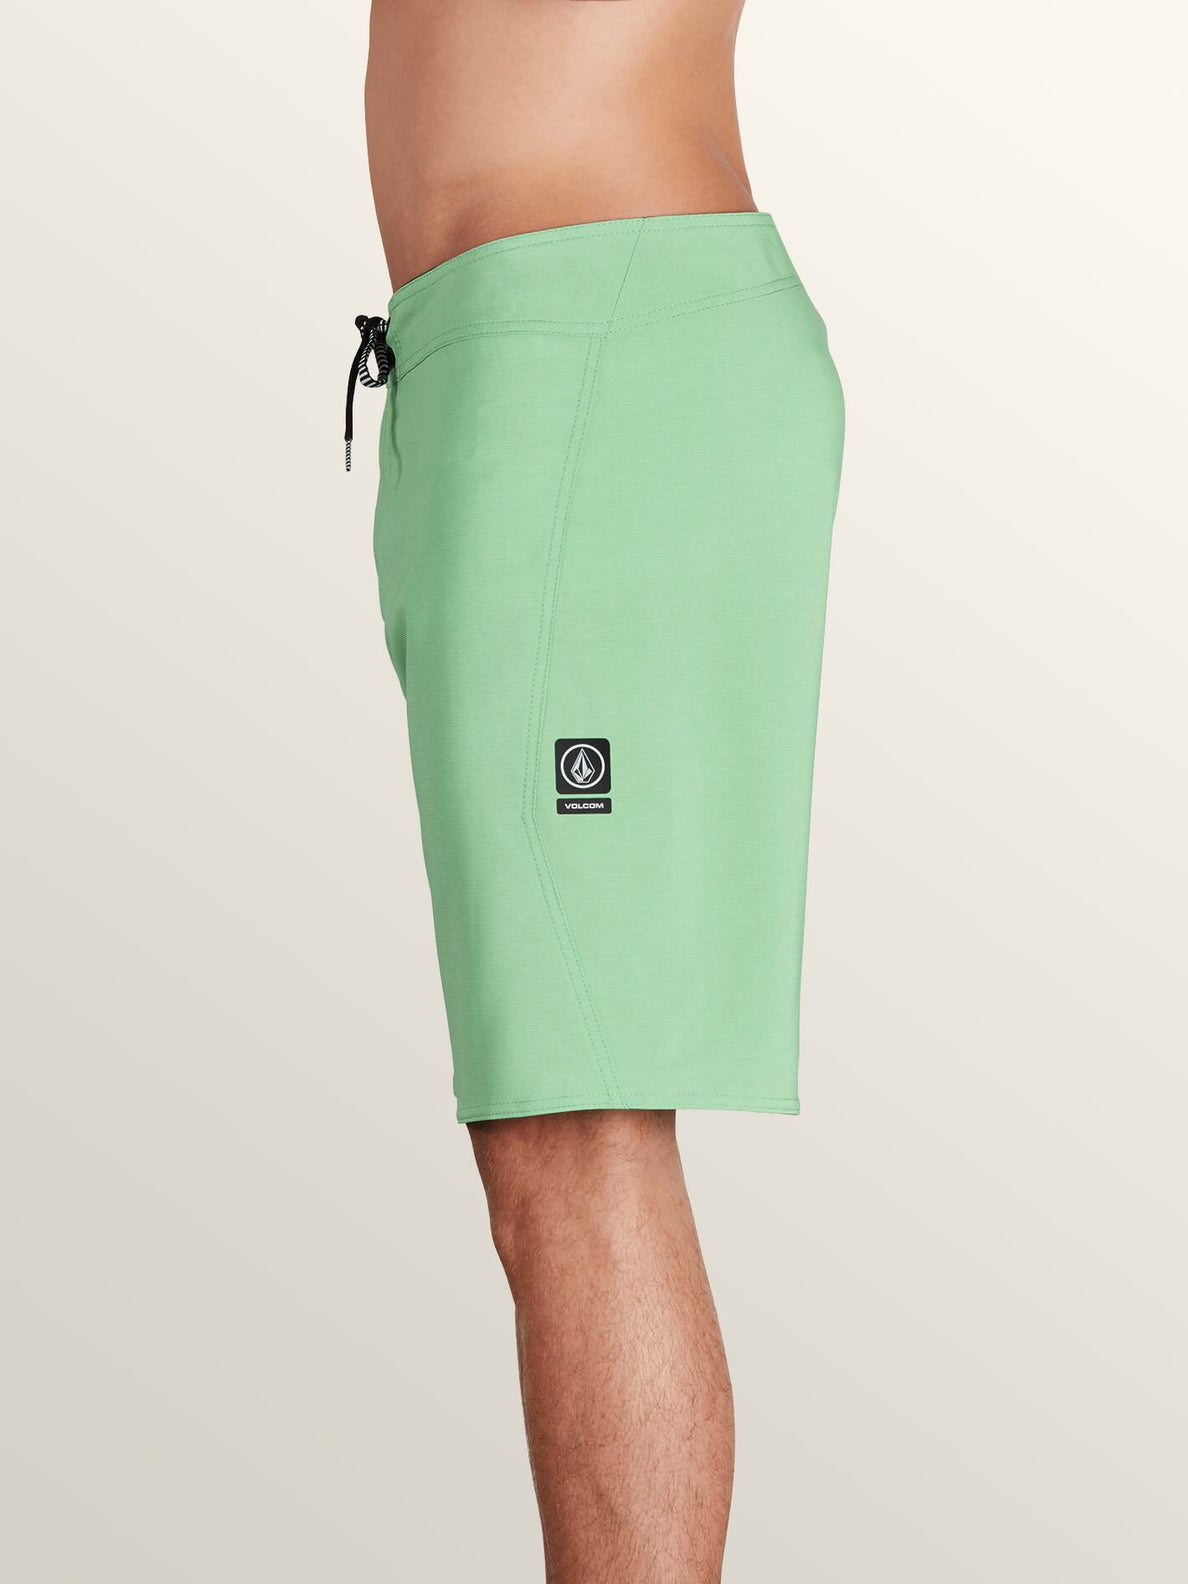 Lido Solid Mod Boardshorts In Poison Green, Alternate View